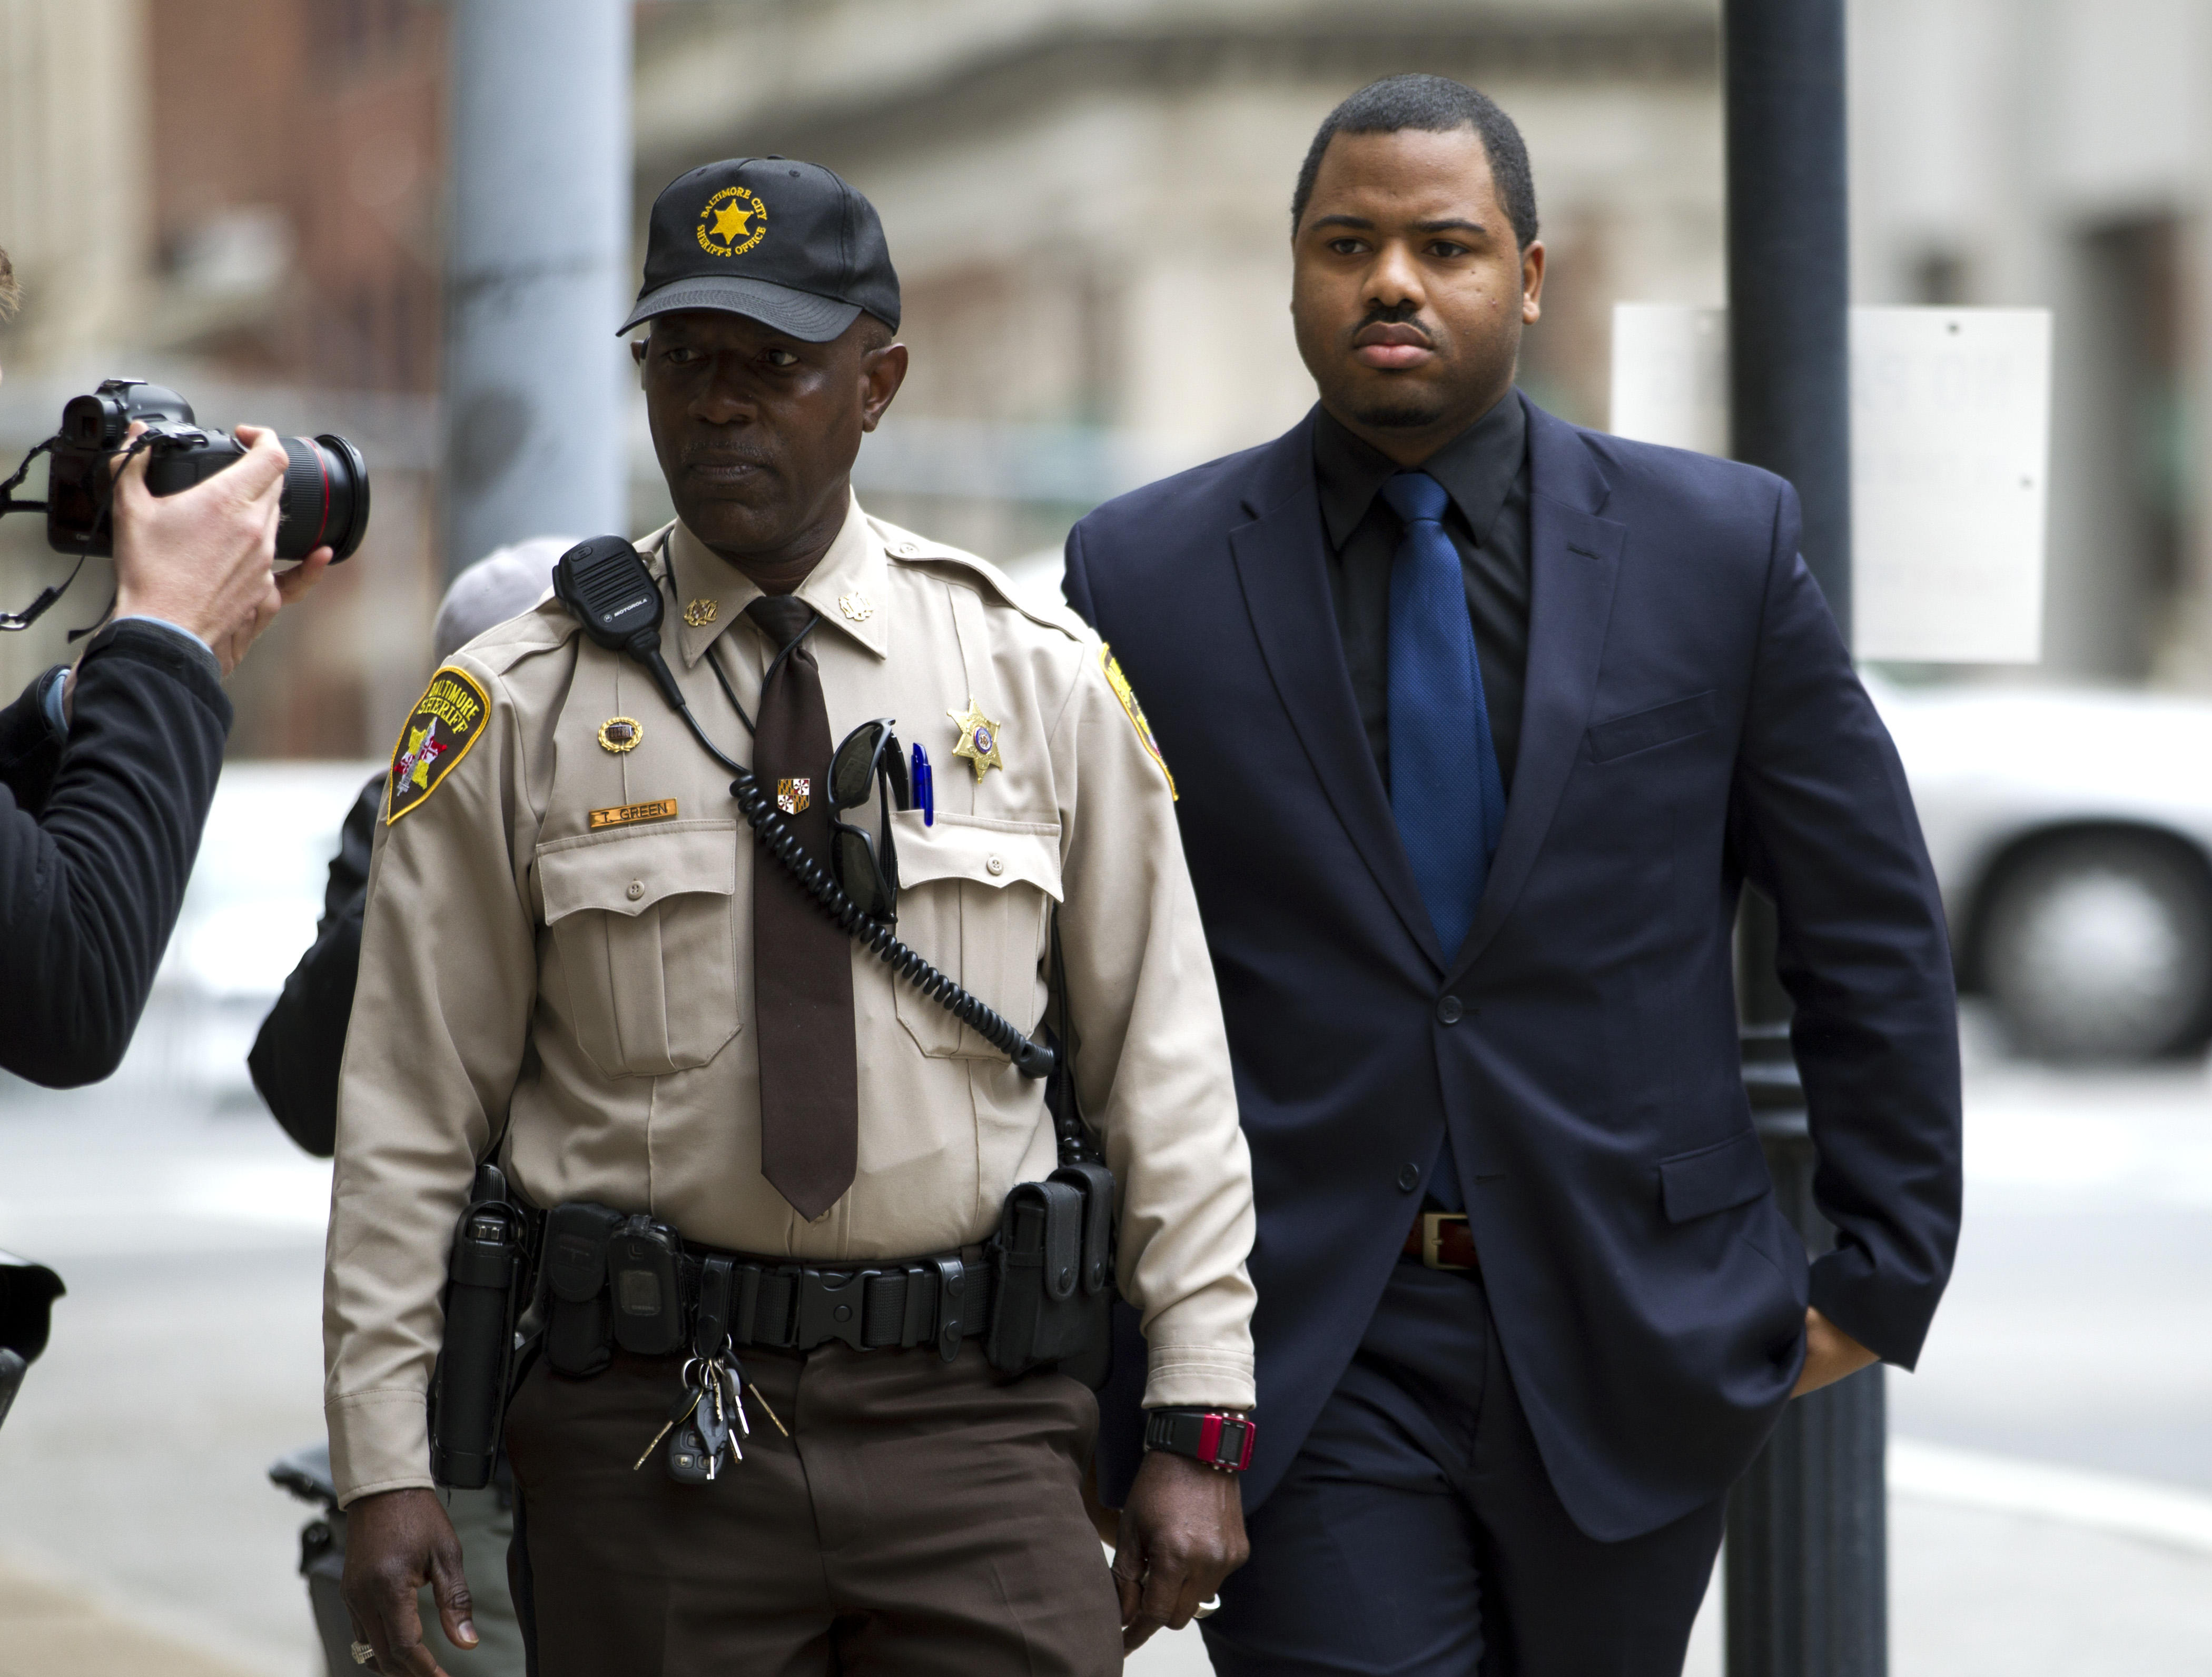 Edward Nero, One of Six Officers Accused in Freddie Gray's Death, Acquitted on All Charges